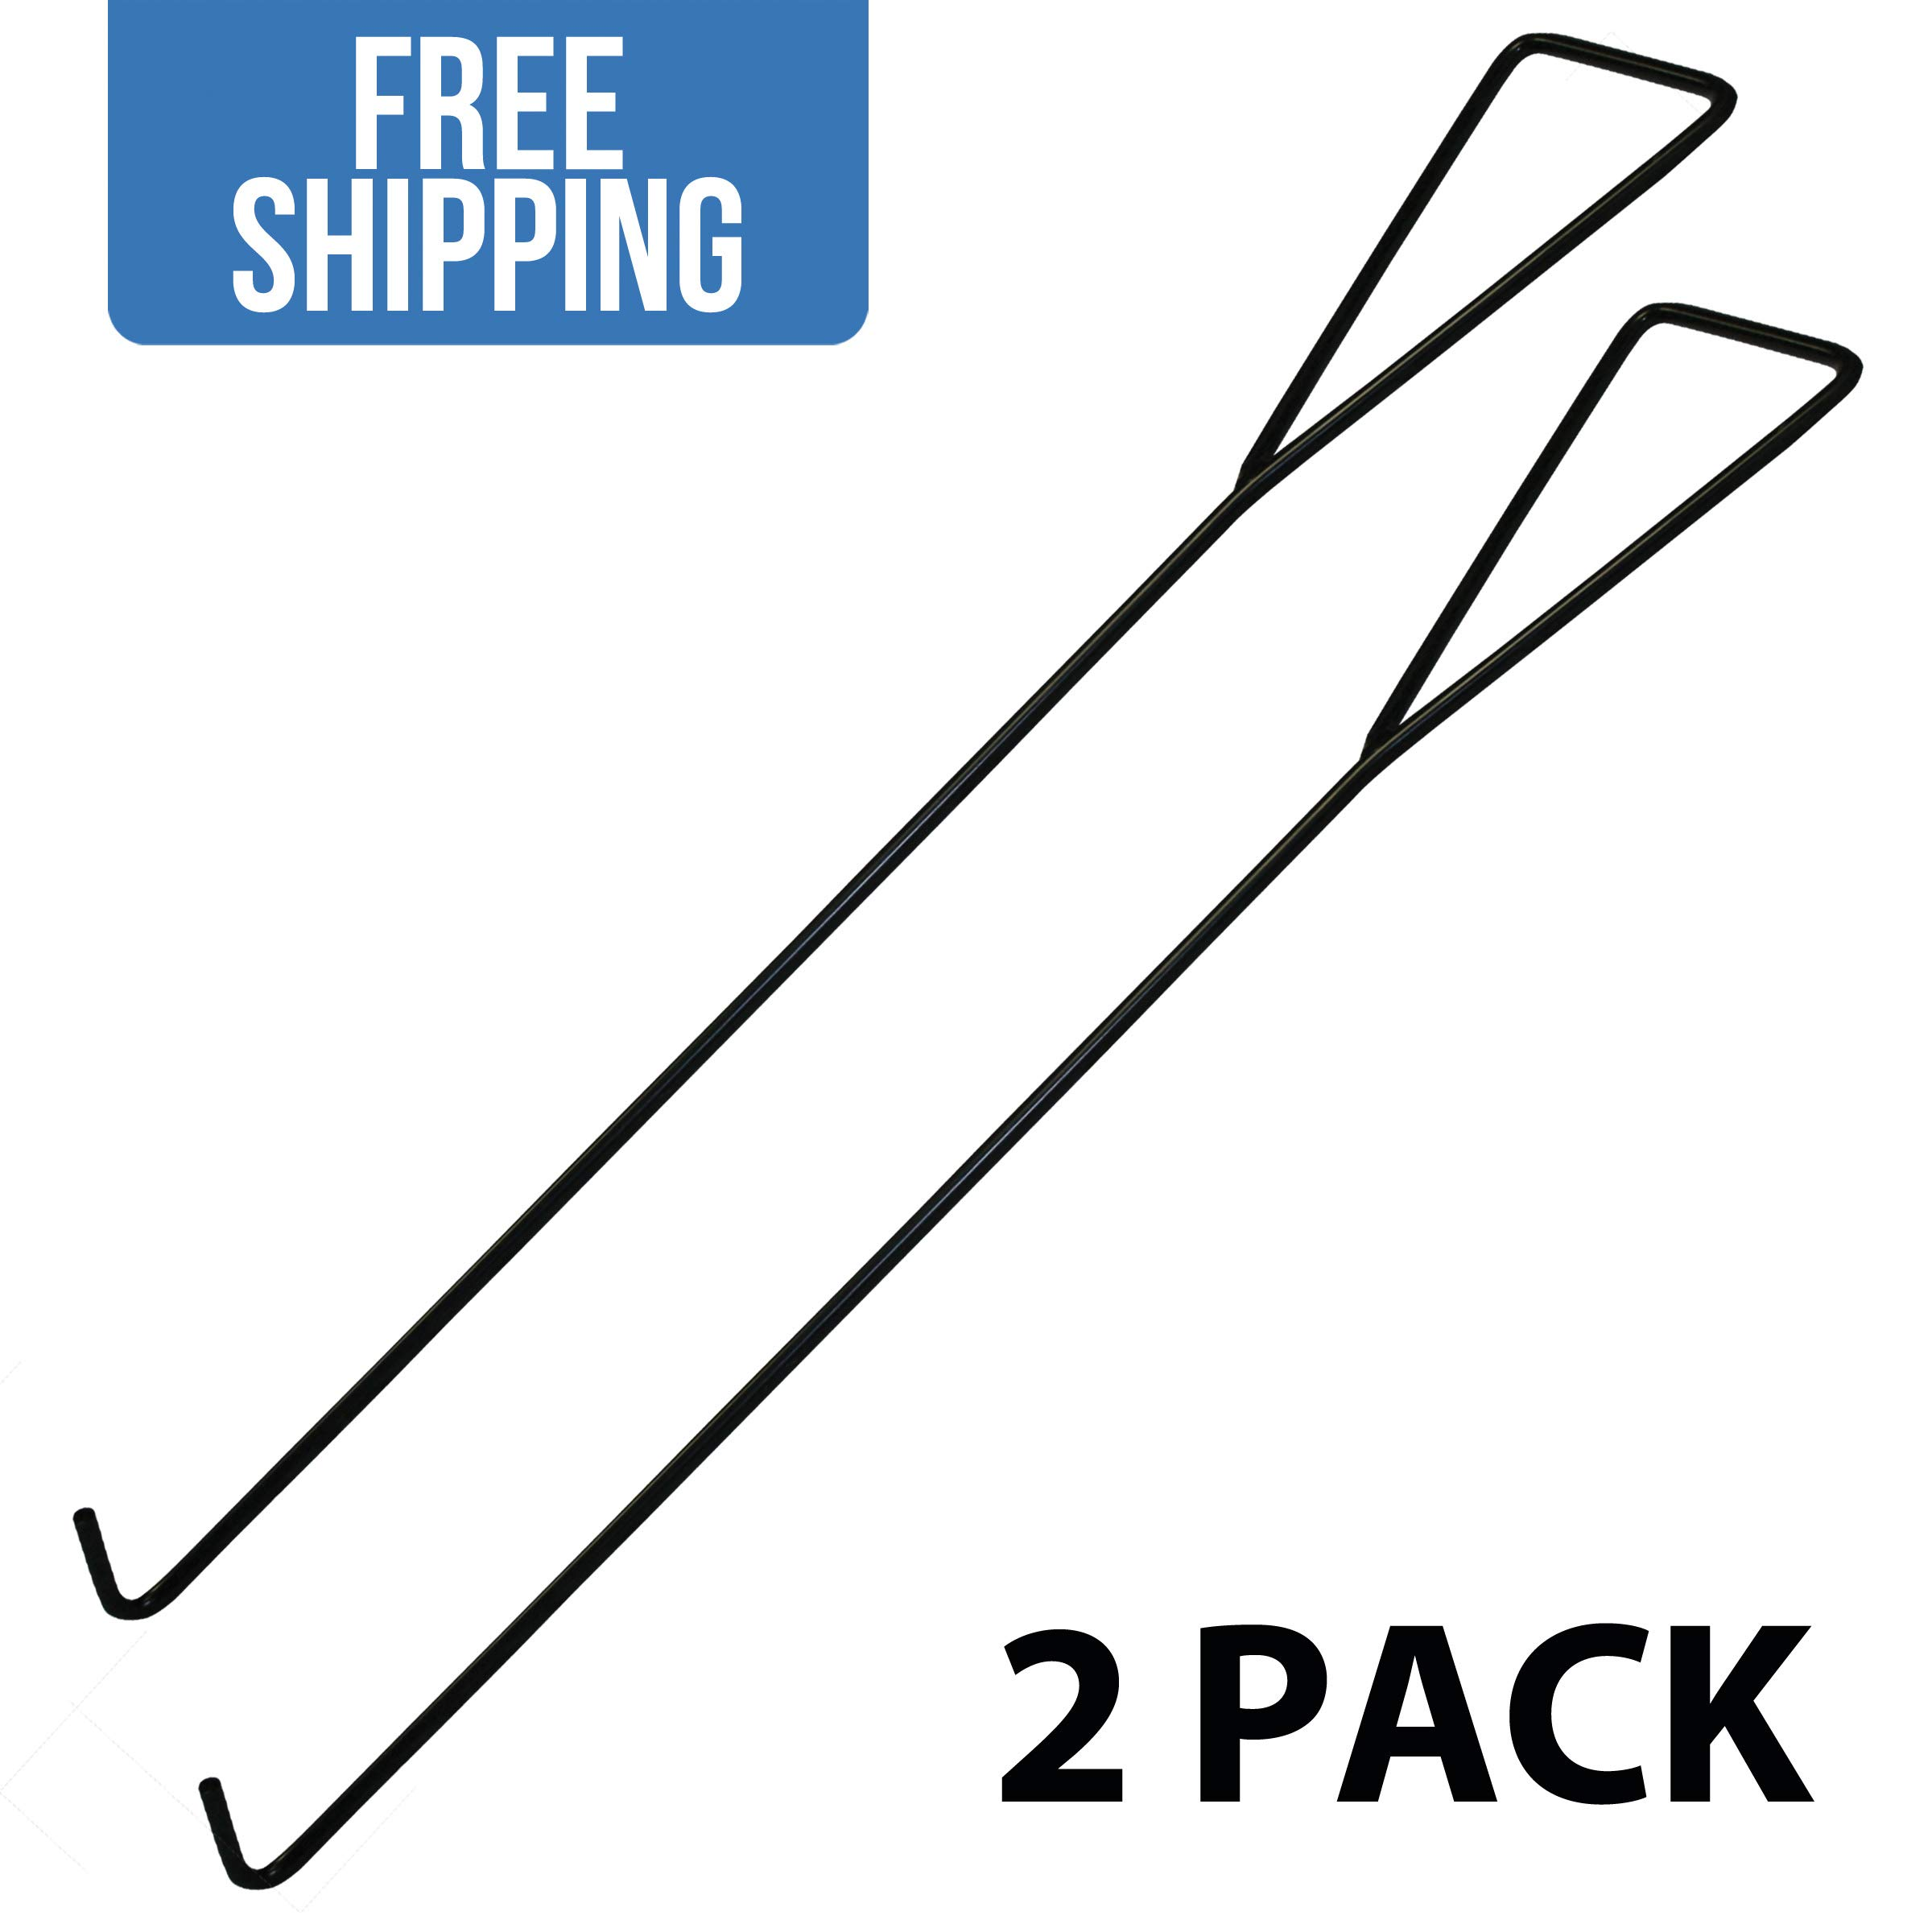 Universal Dock Hook Dolly Tow Hook — 2 Pack - Shippers Supplies by Shippers Supplies